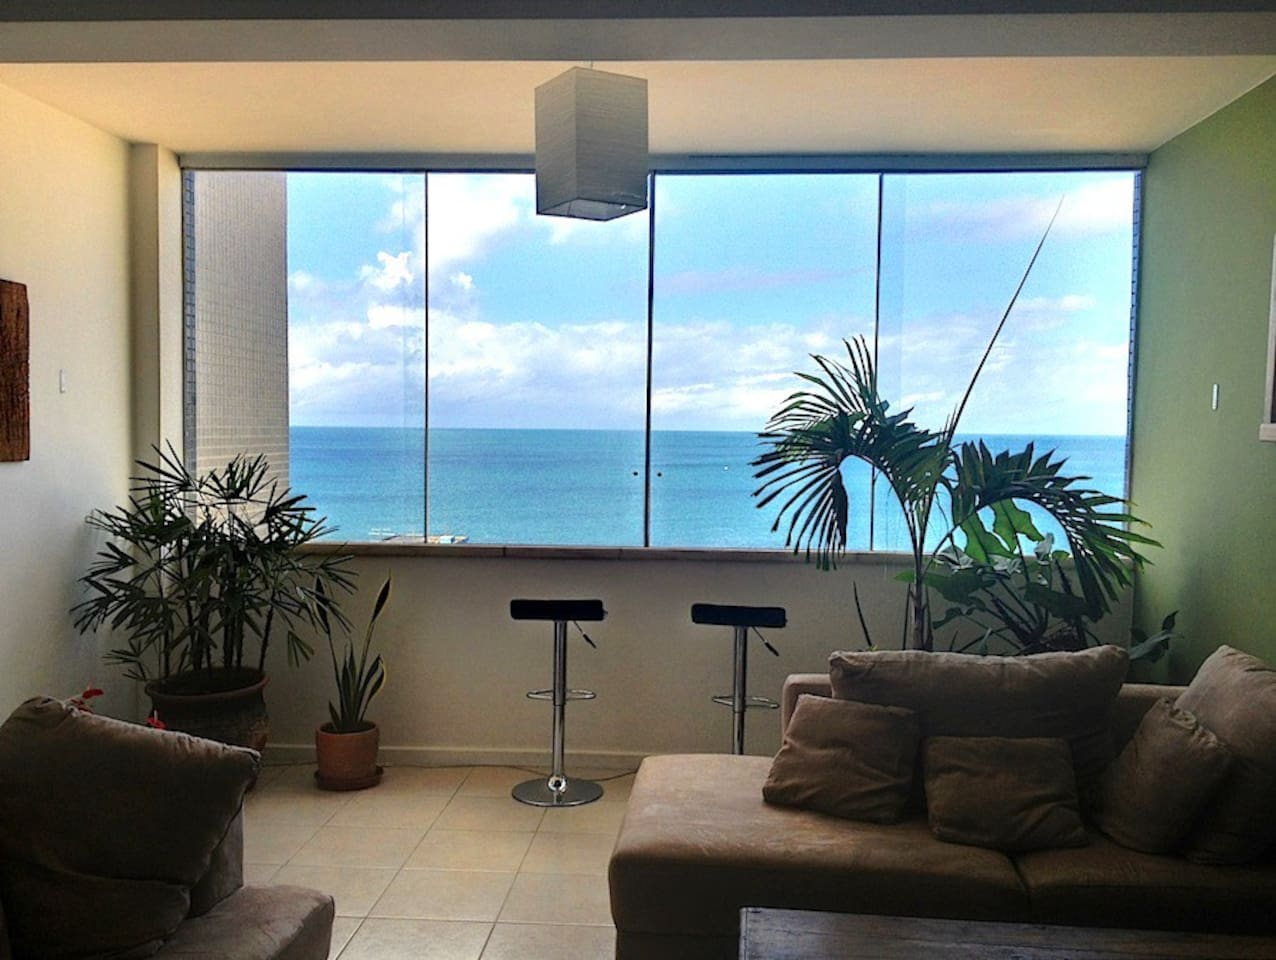 Bright living room with amazing ocean view. Sit and gaze out at the boats sailing past. June 2013.